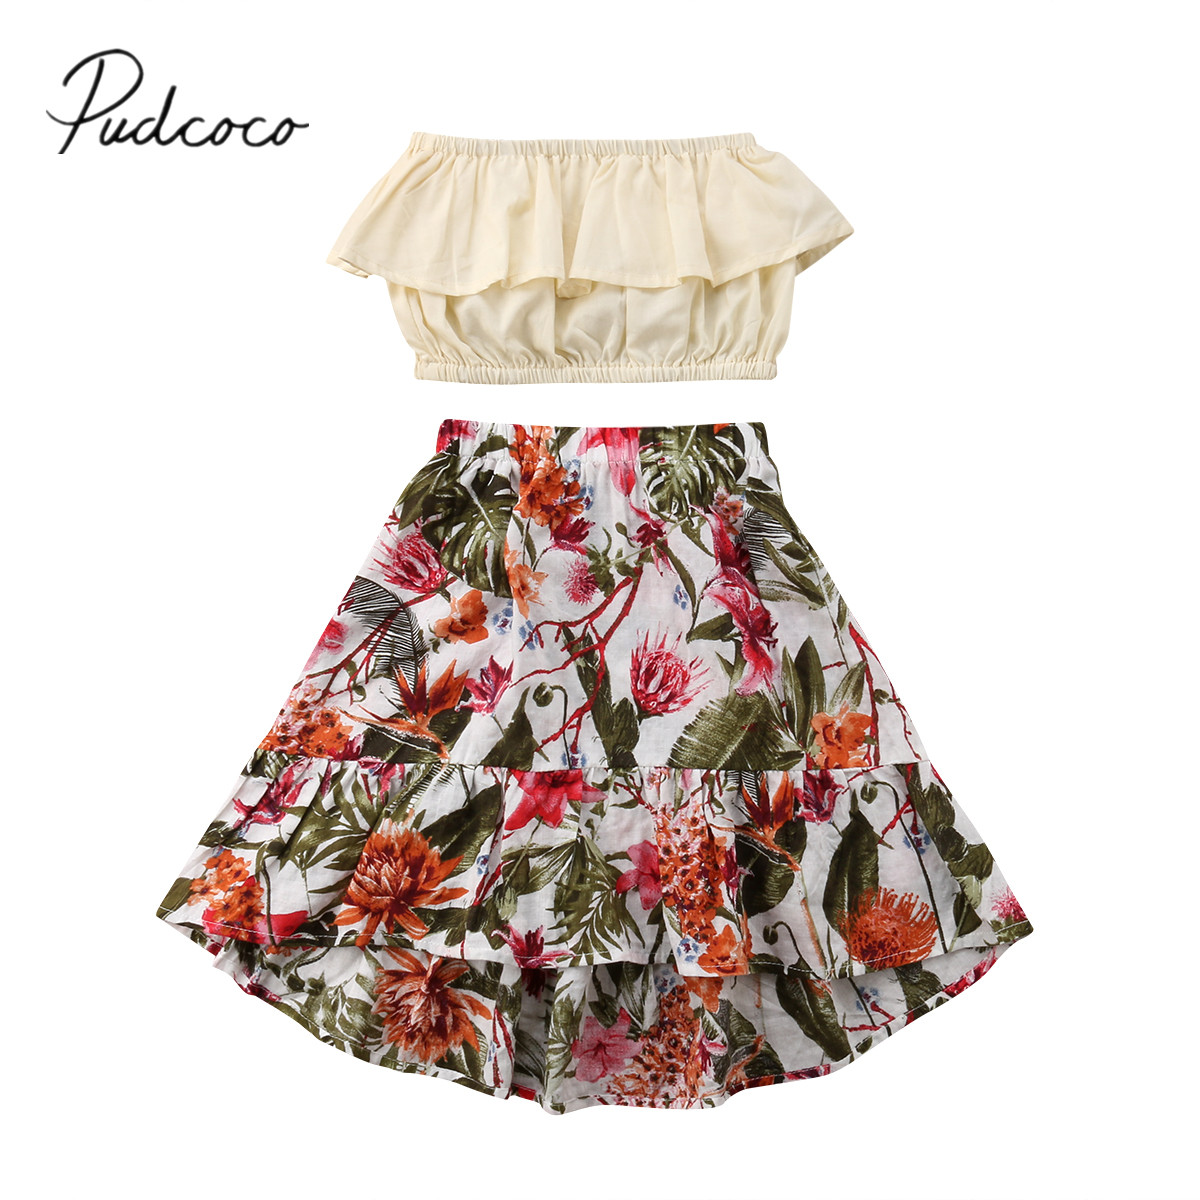 2018 Brand New Infant Toddler Child Kid Baby Girl Summer Clothes Chiffon Crops Short Top + Floral Skirt Outfit 2PCS Sets 1-7T men luxury crocodile style genuine leather shoes casual business office wedding dress point toe handmade brogue footwear oxfords page 5 page 5 page 2 page 1